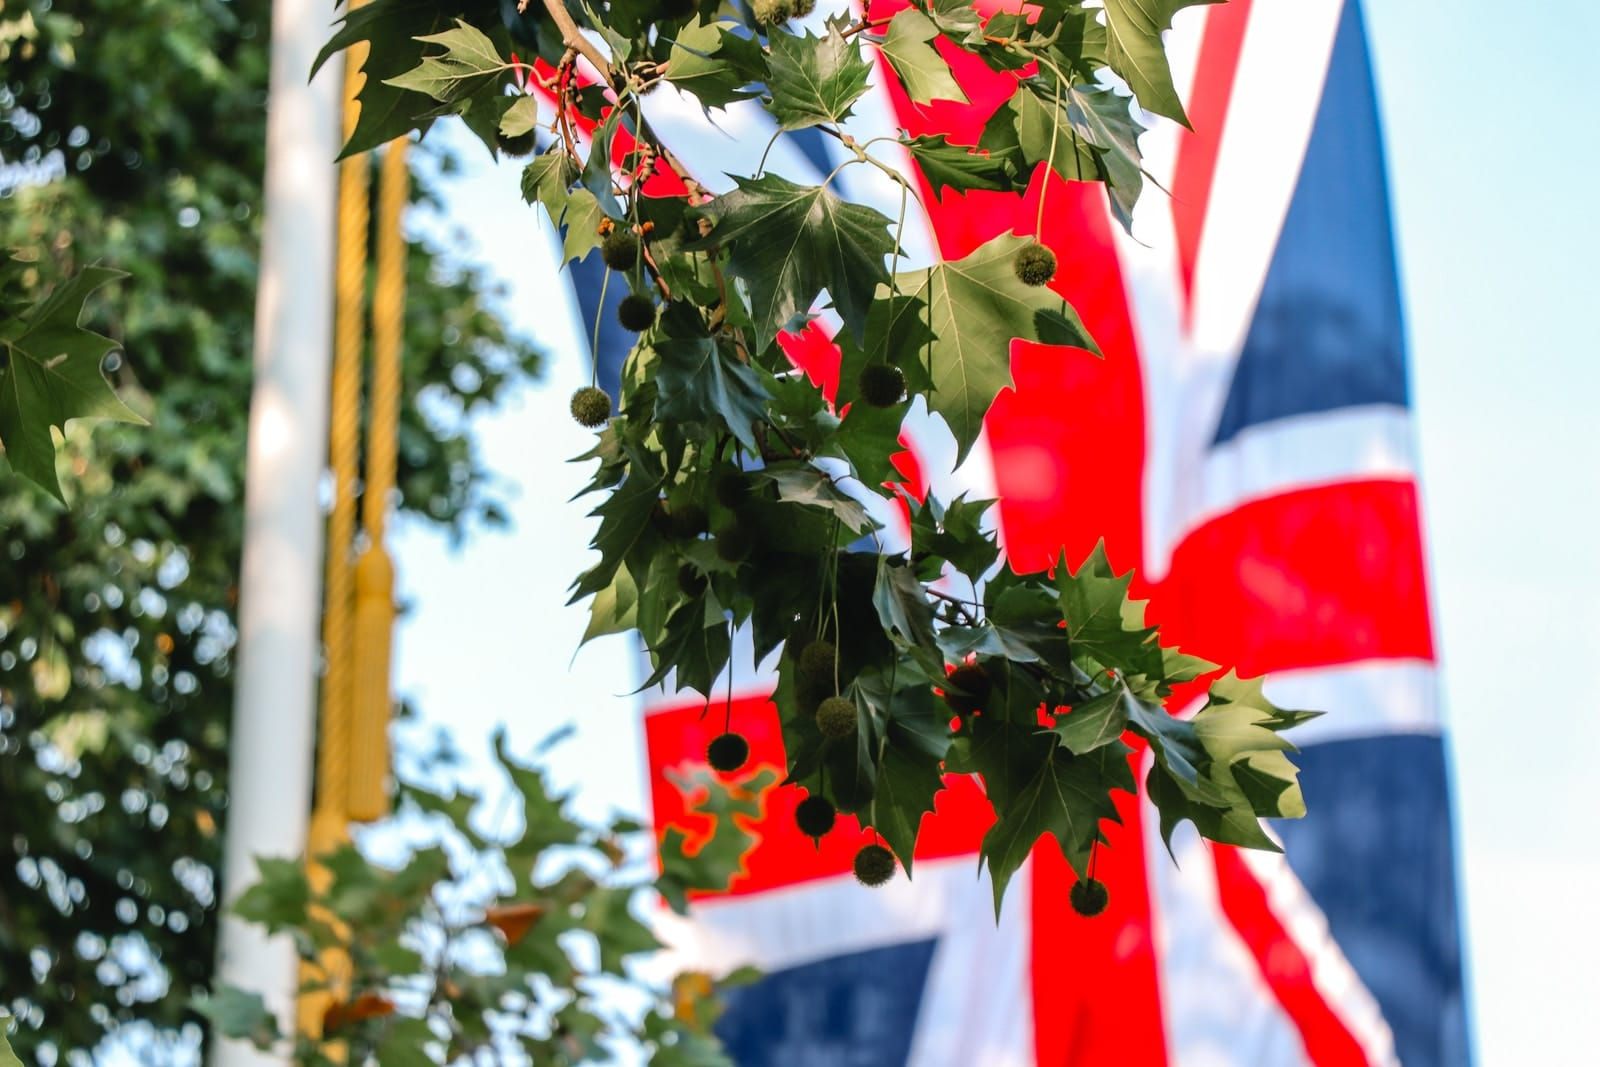 United Kingdom flag near green leaf tree during daytime